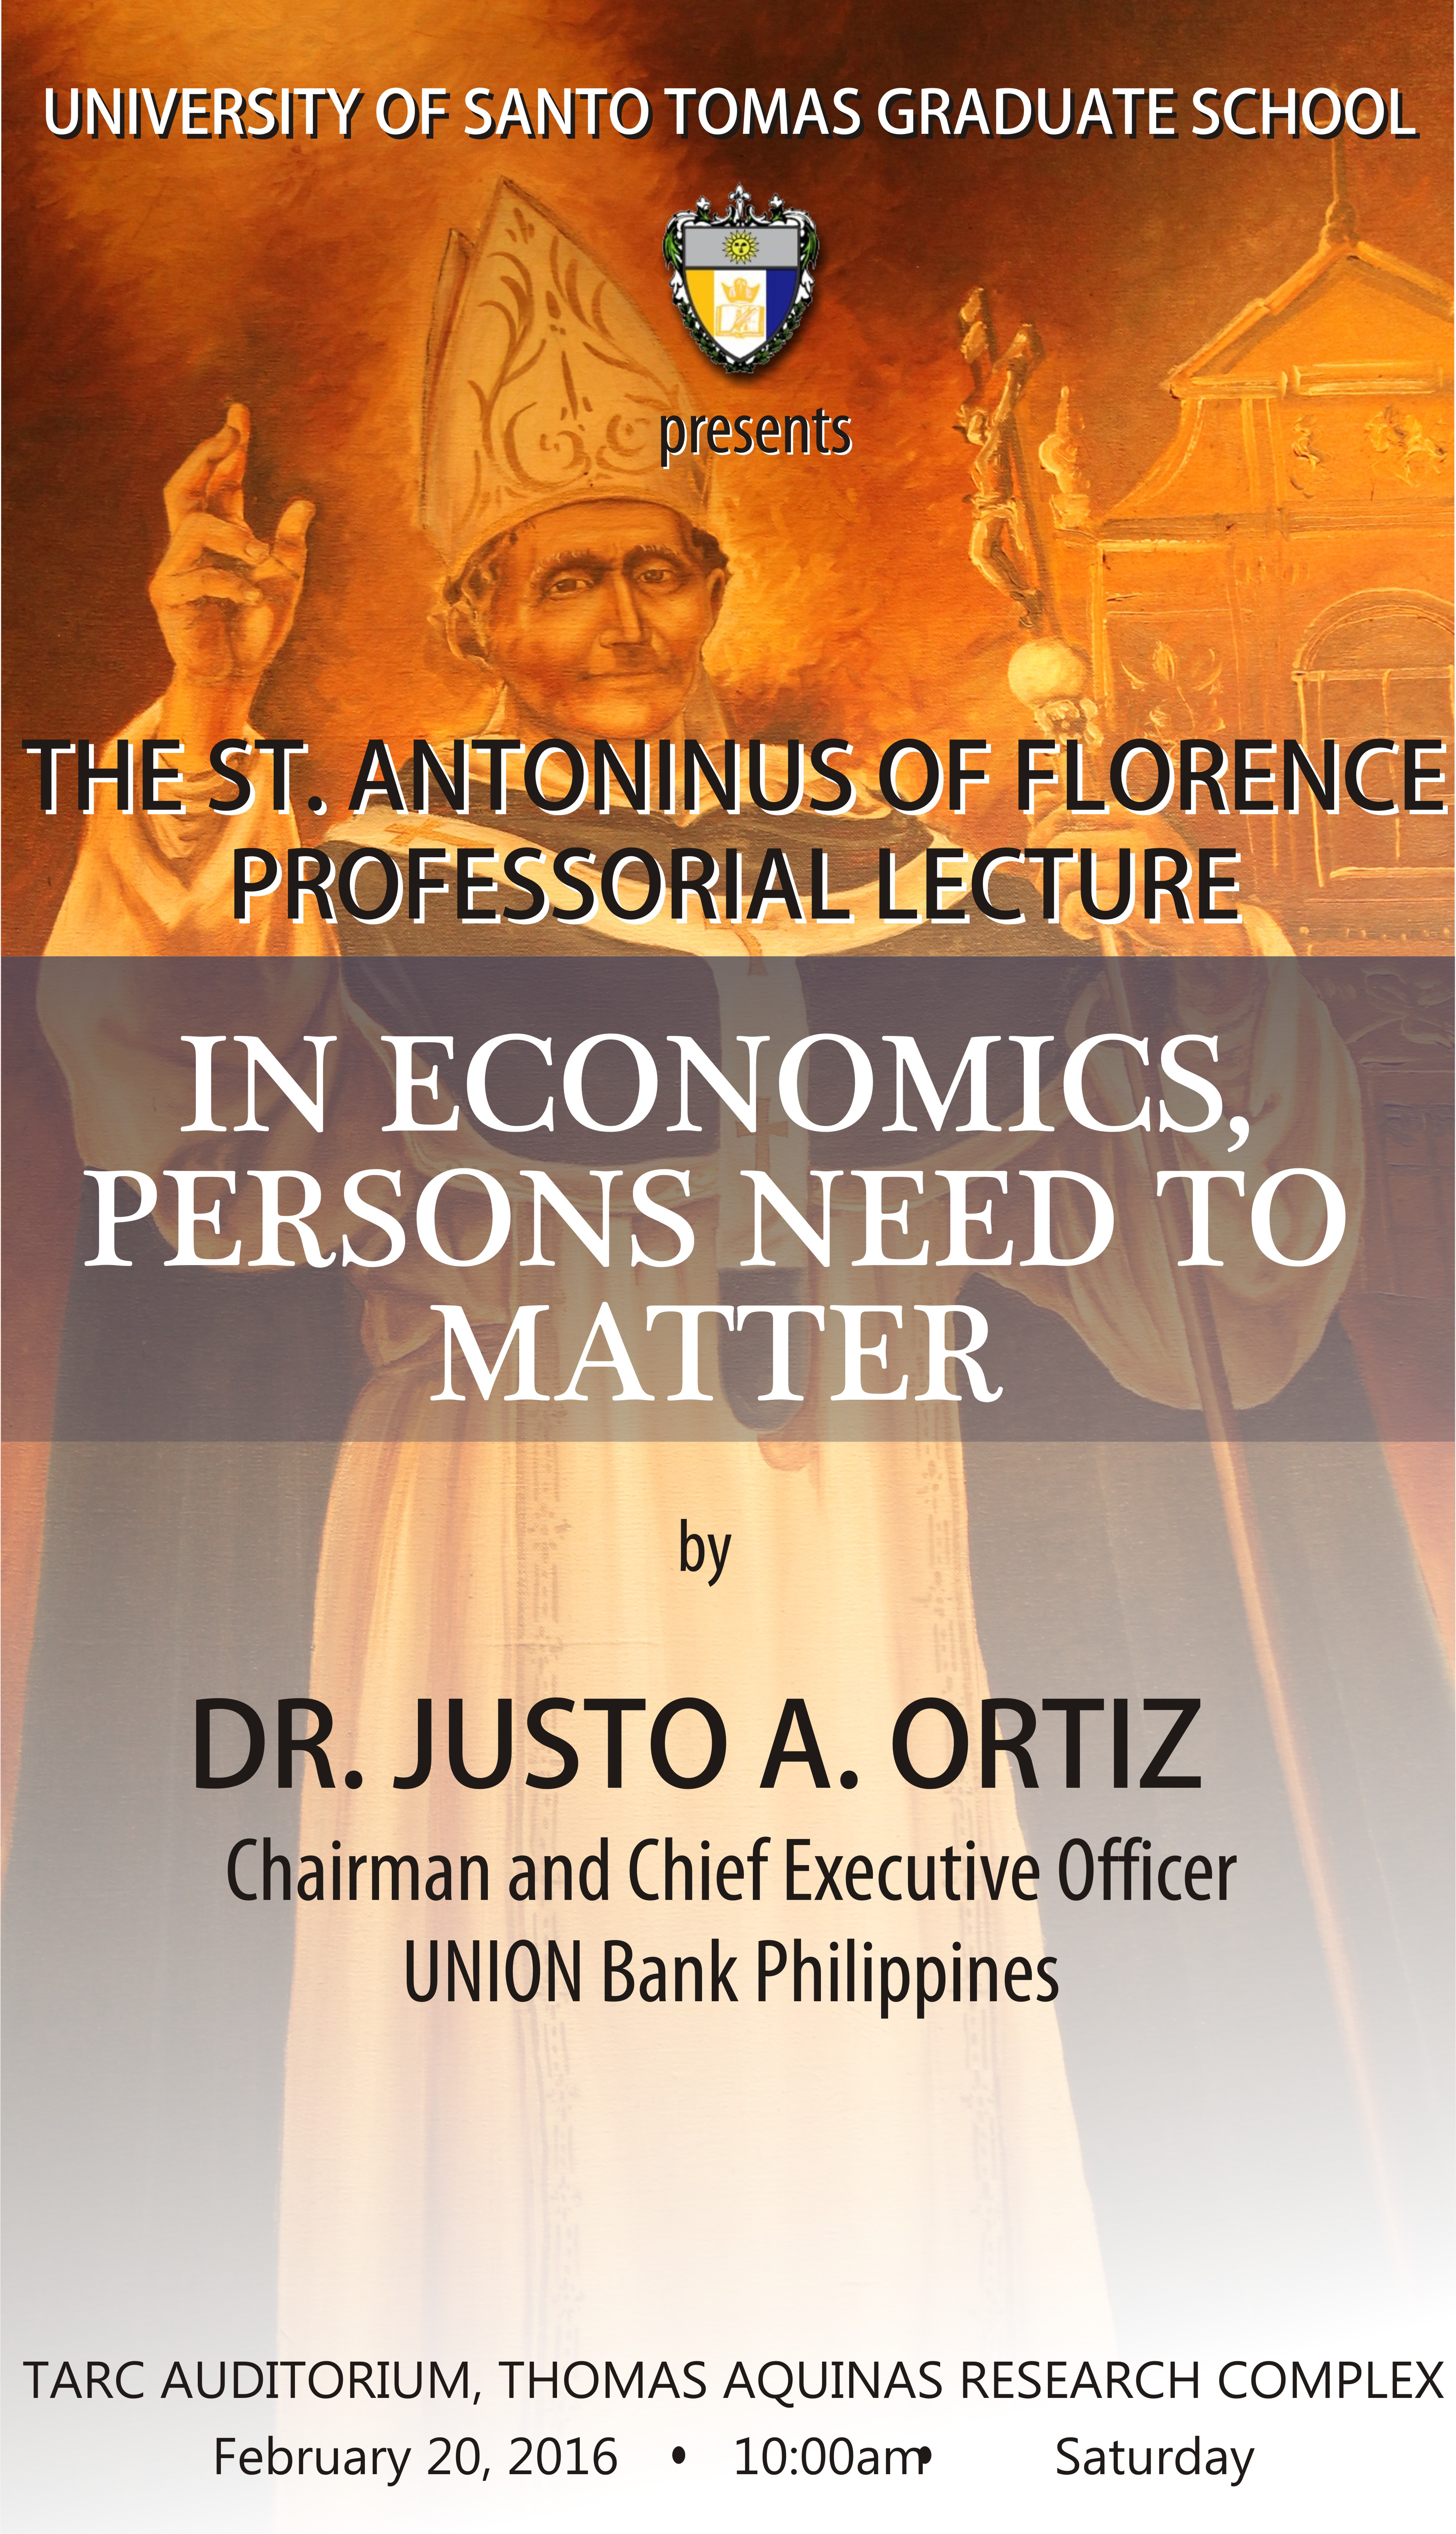 St. Antoninus of Florence Professorial Lecture